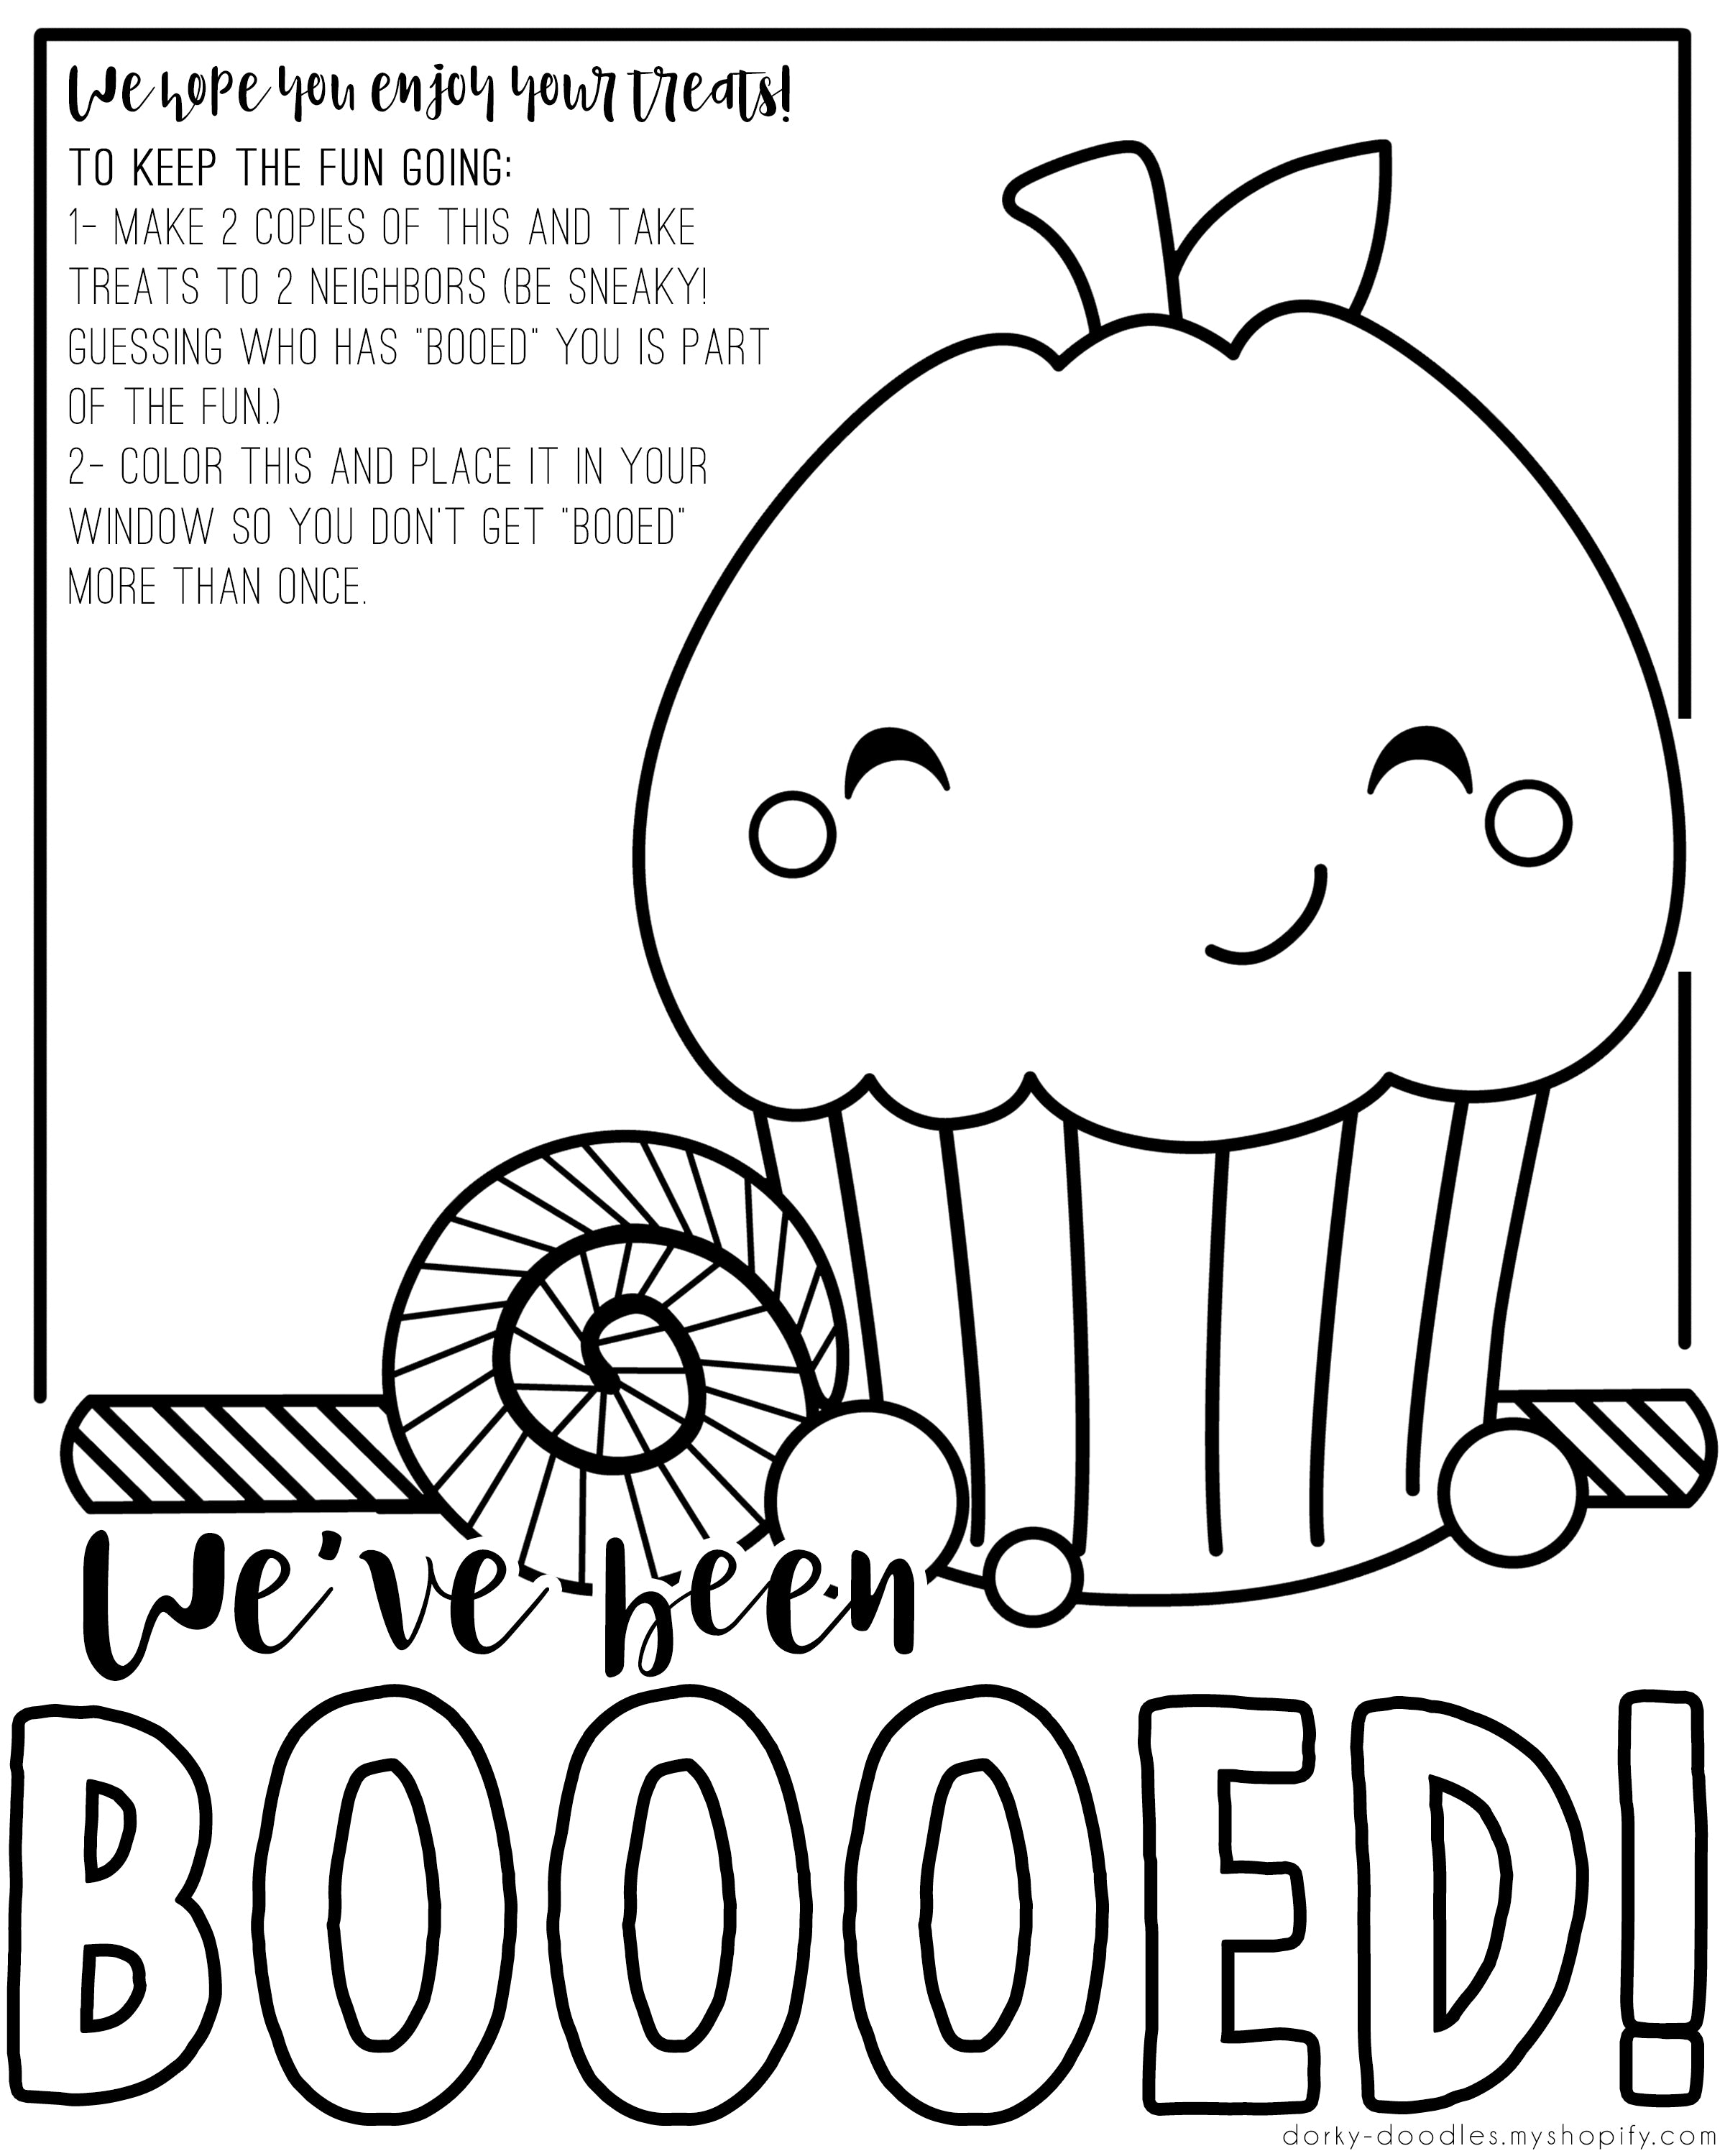 photo about You've Been Booed Printable named Youve Been Booed Printable Dorky Doodles